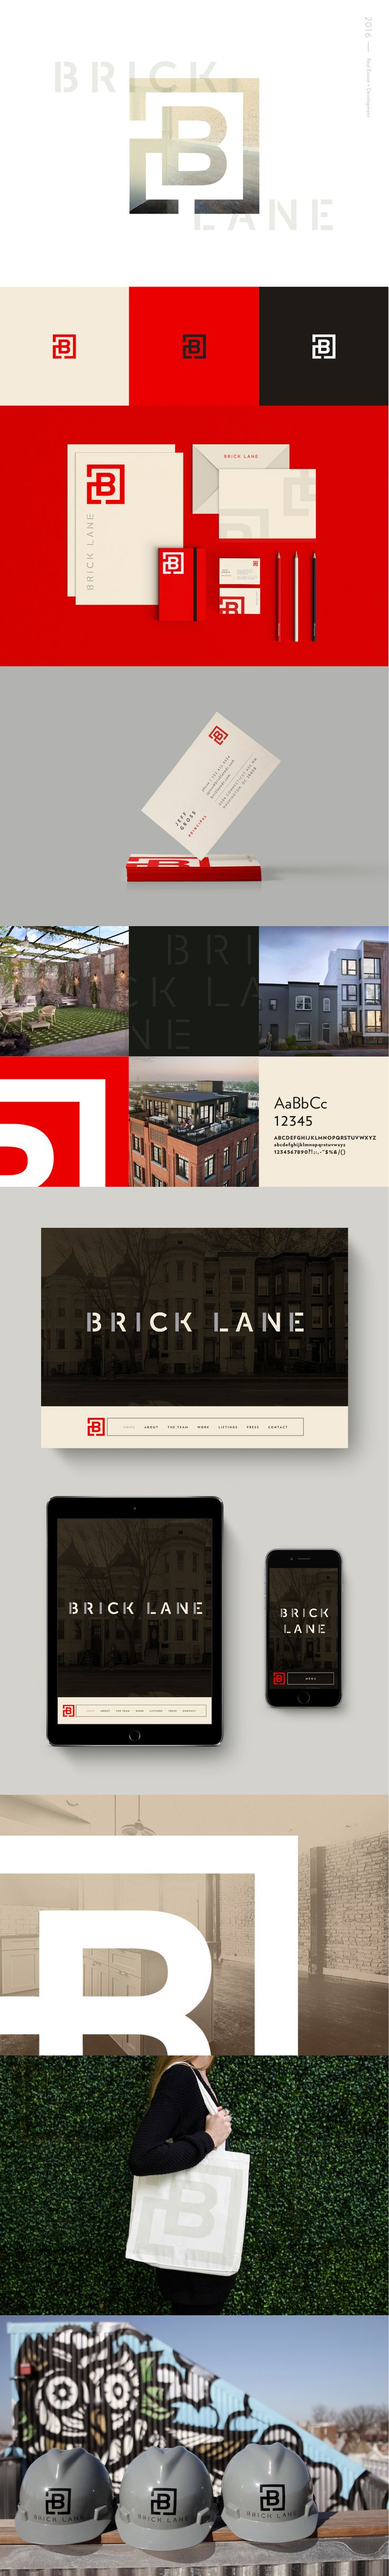 Brick Lane branding design by Rebecca Finn. Brick Lane is a real estate services company based in Washington, D.C.